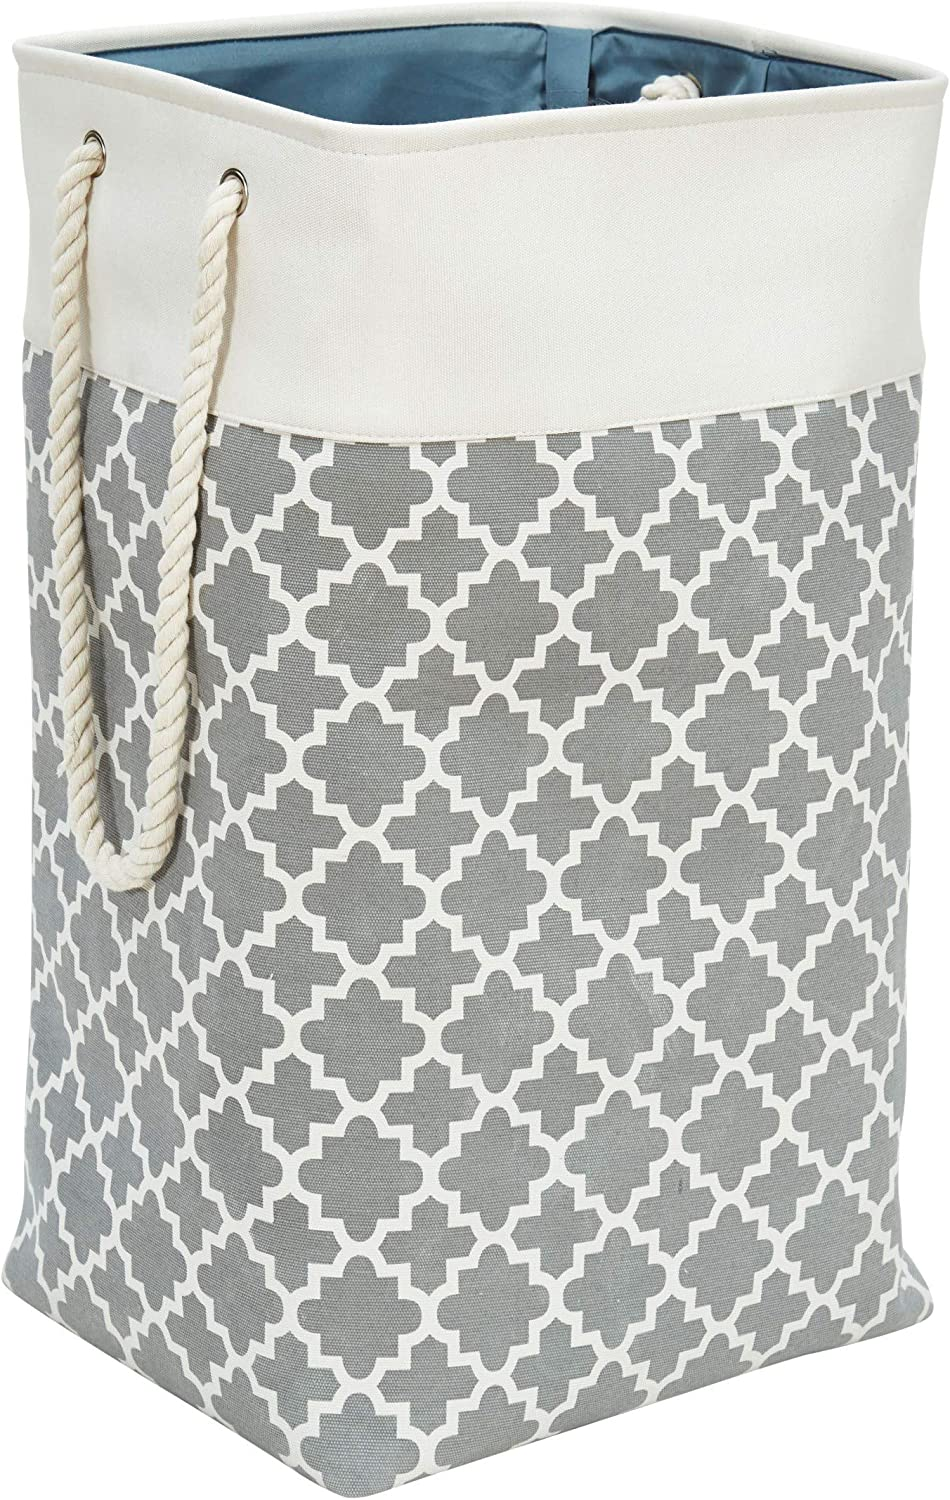 DECOMOMO Foldable Laundry Basket 85.8L Storage Bins, Canvas Nursery Hamper XL Container Long W/ Cotton Rope Handles for Kids, Pets, Toys, Bedroom, Clothes, Sheets, Towels (Patterned Grey – 1 Pack)